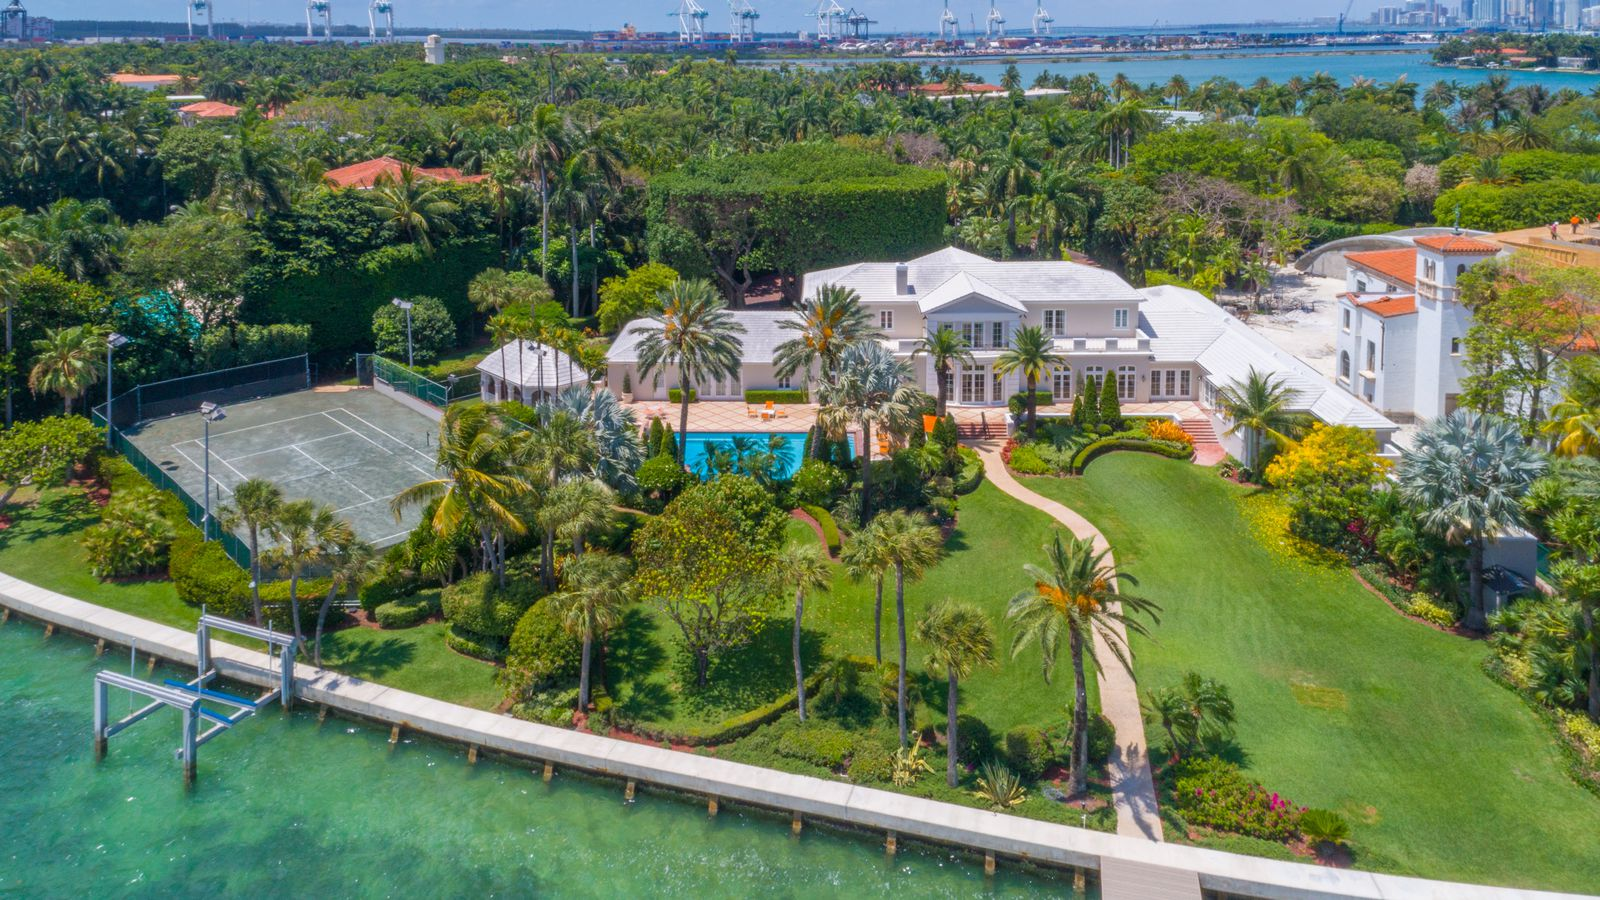 $49m star island manse becomes miami's 4th priciest home